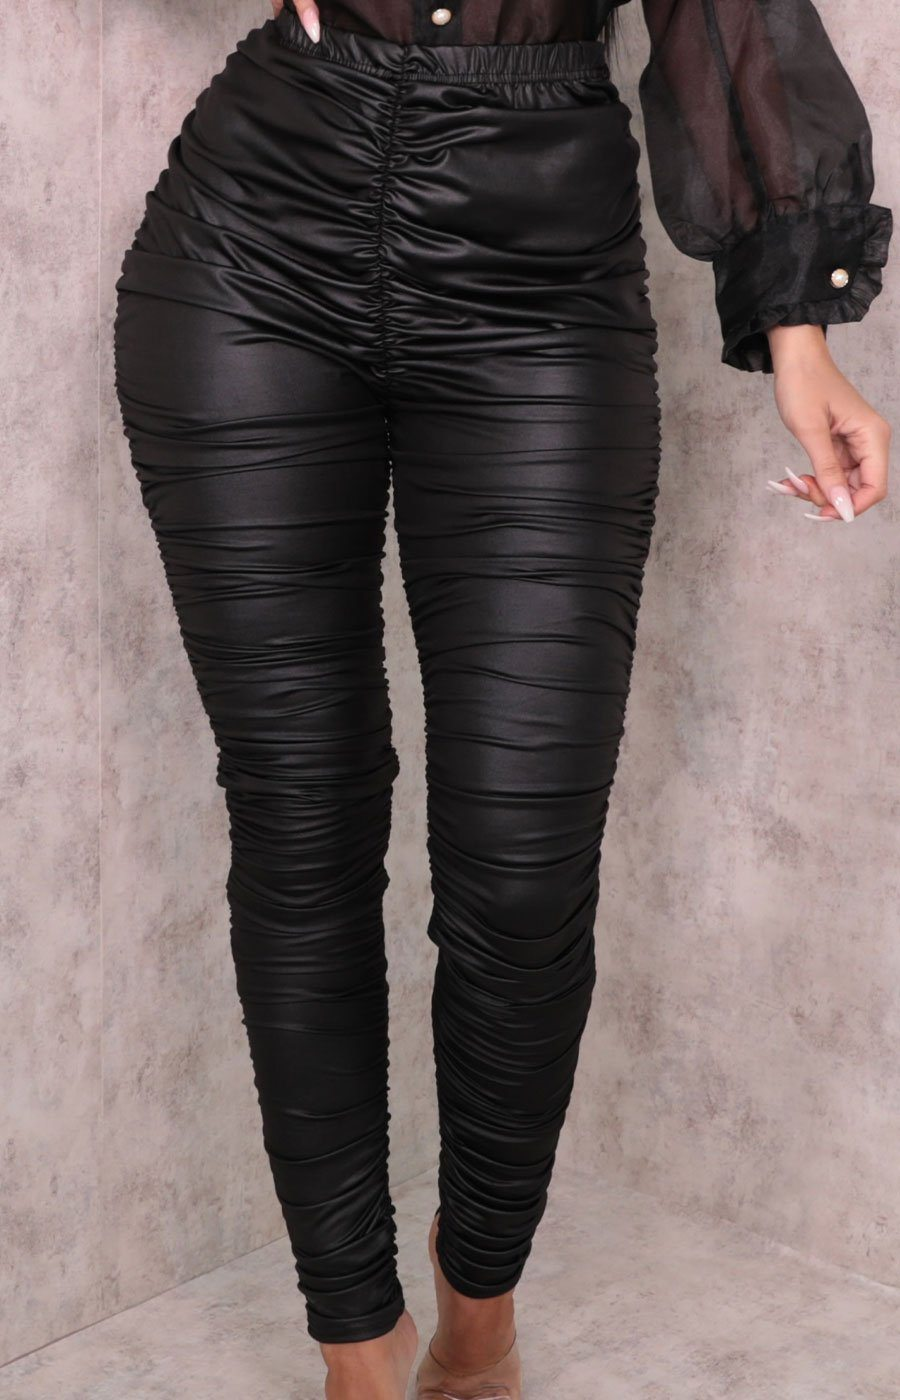 Black Faux Leather Ruffle High Waisted Trousers - Frankie